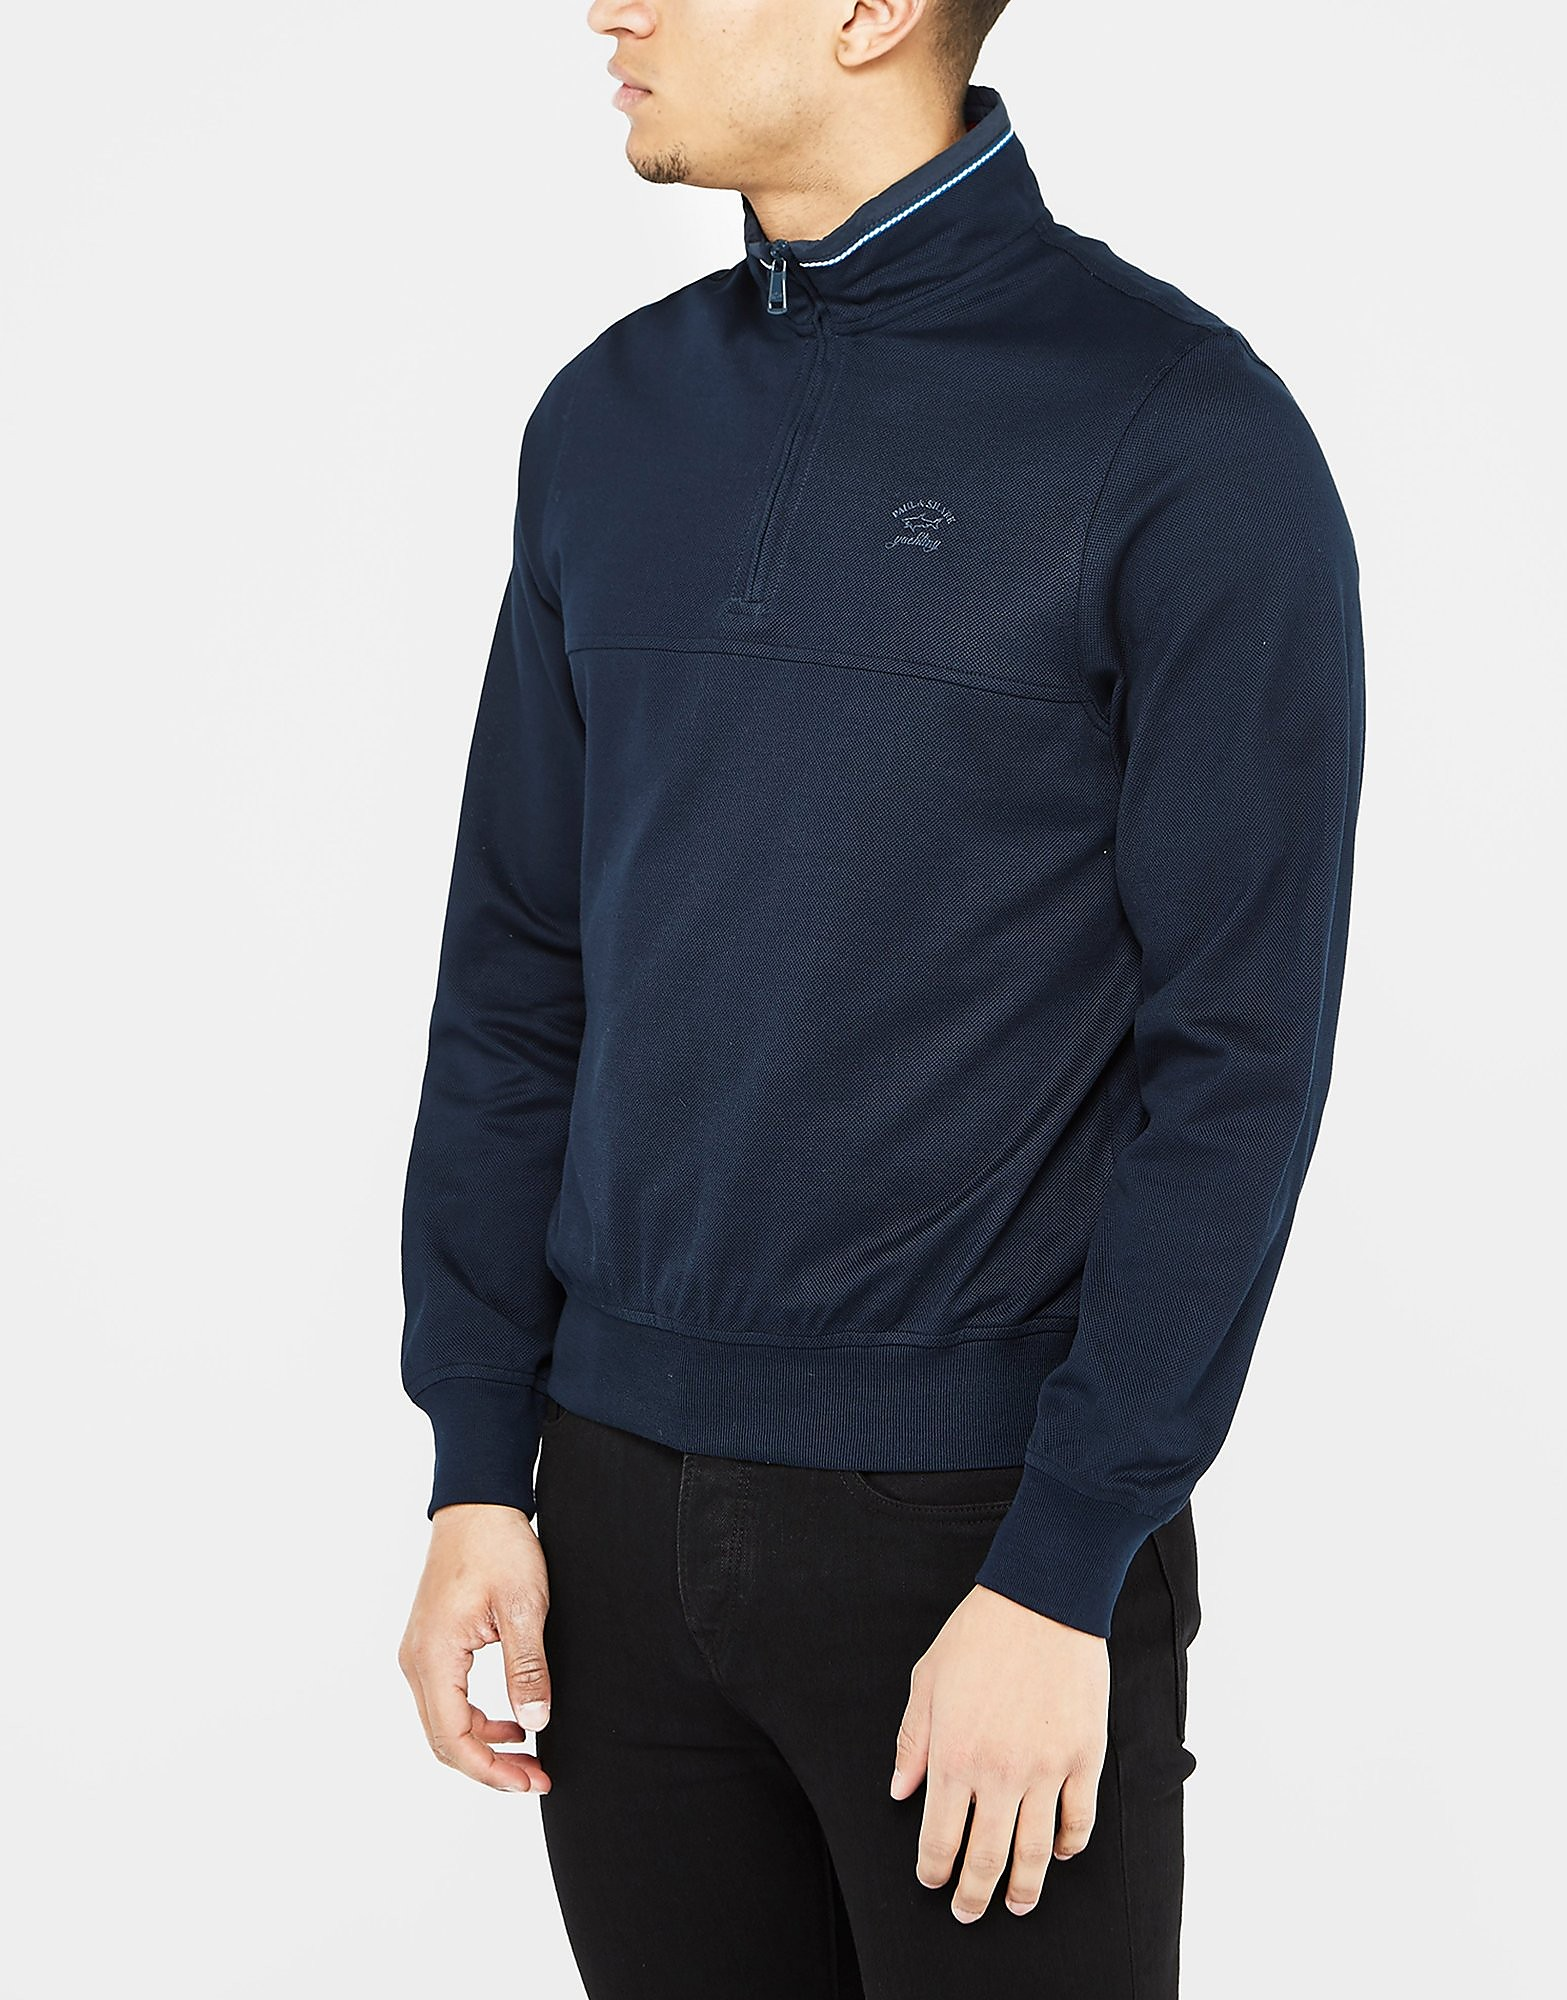 Paul and Shark 1/4 Zip Pique Knit